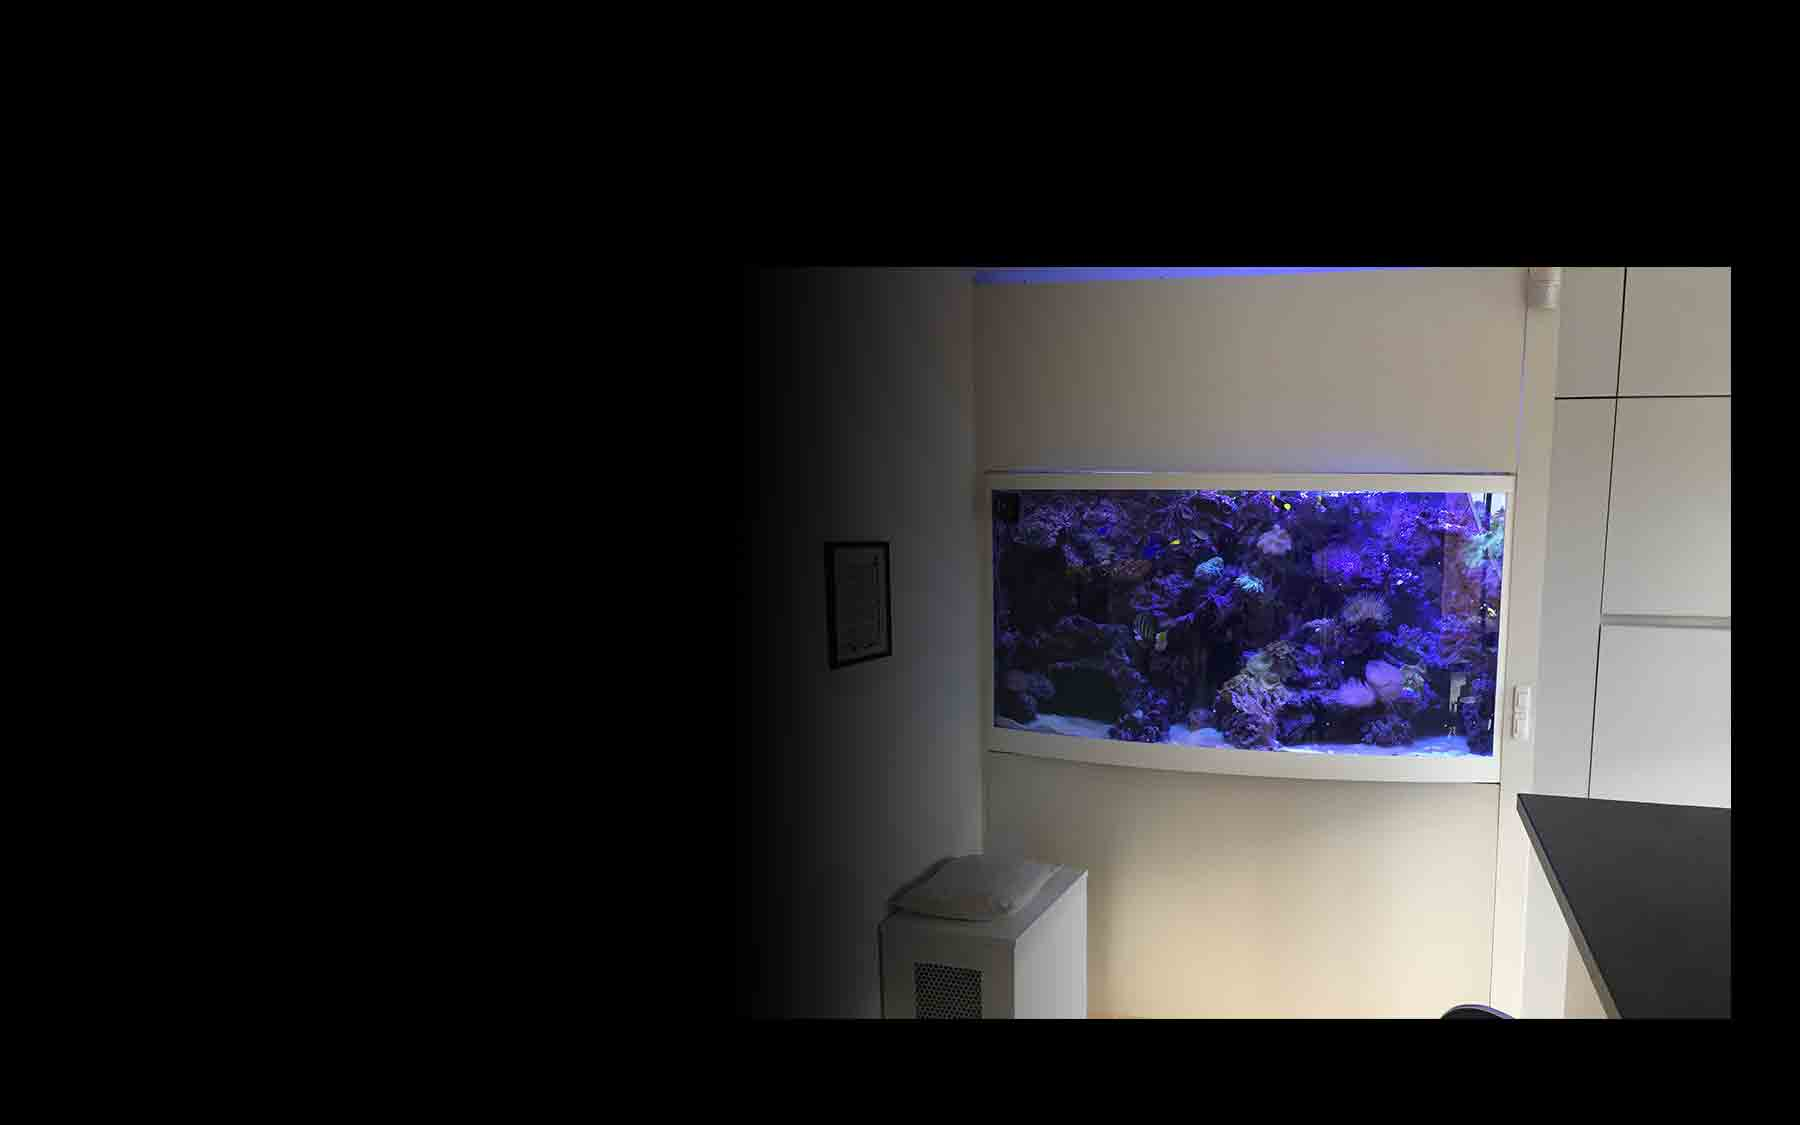 aquarium cape maclear aqua art design. Black Bedroom Furniture Sets. Home Design Ideas